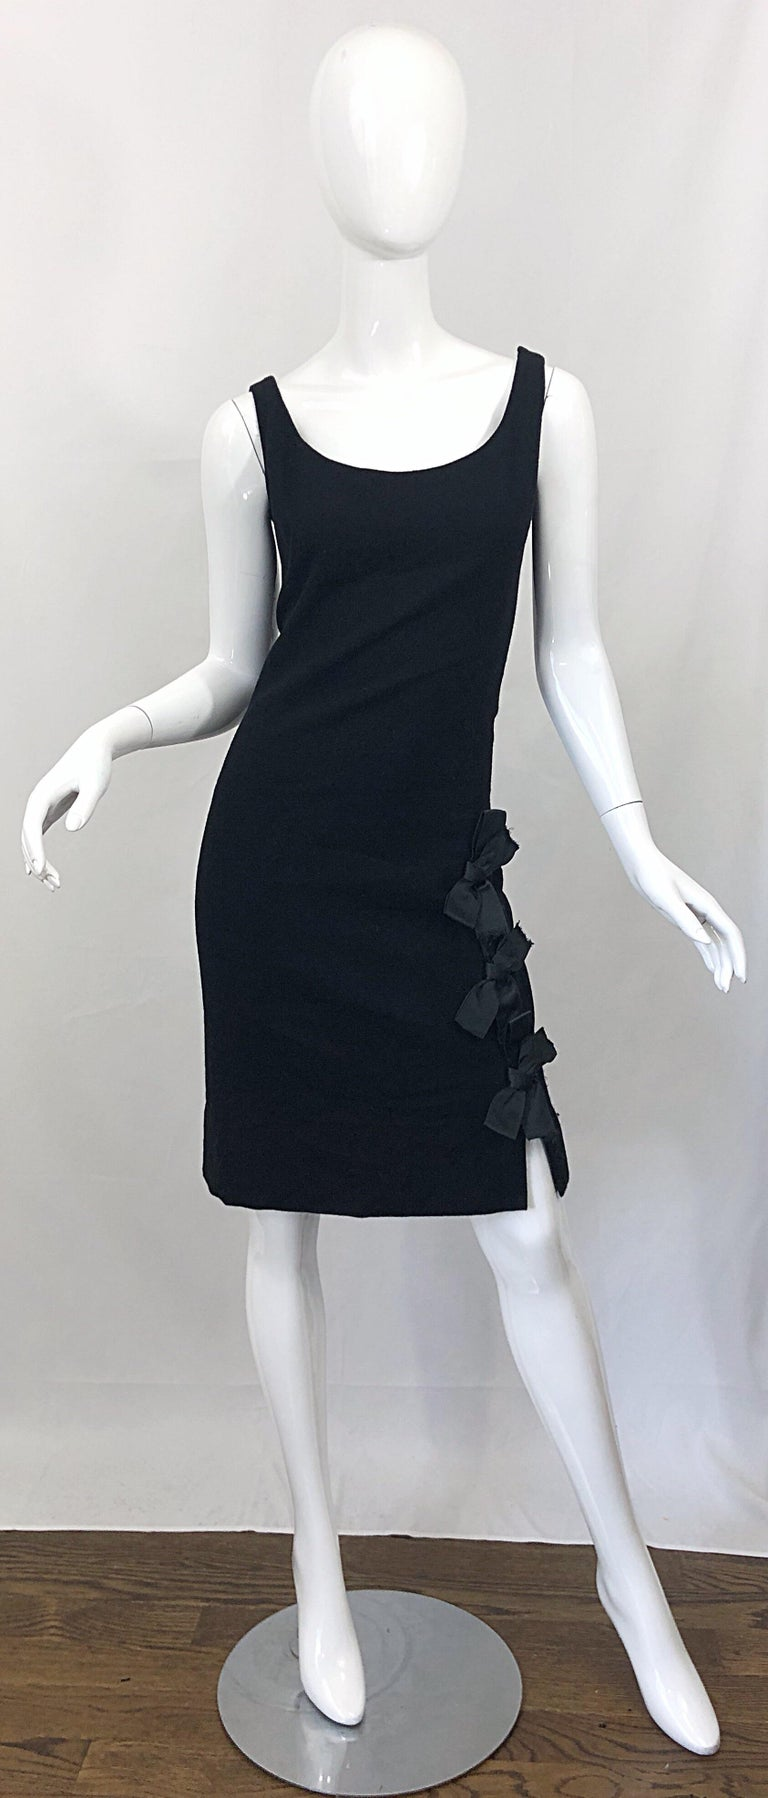 Timeless stylish 1960s GEOFFREY BEENE black wool bow detail sheath dress! Flattering sheath silhouette that looks great on any shape. Three black silk bows up the left hem. Hidden metal zipper up the side with hook-and-eye closure. Fully lined.